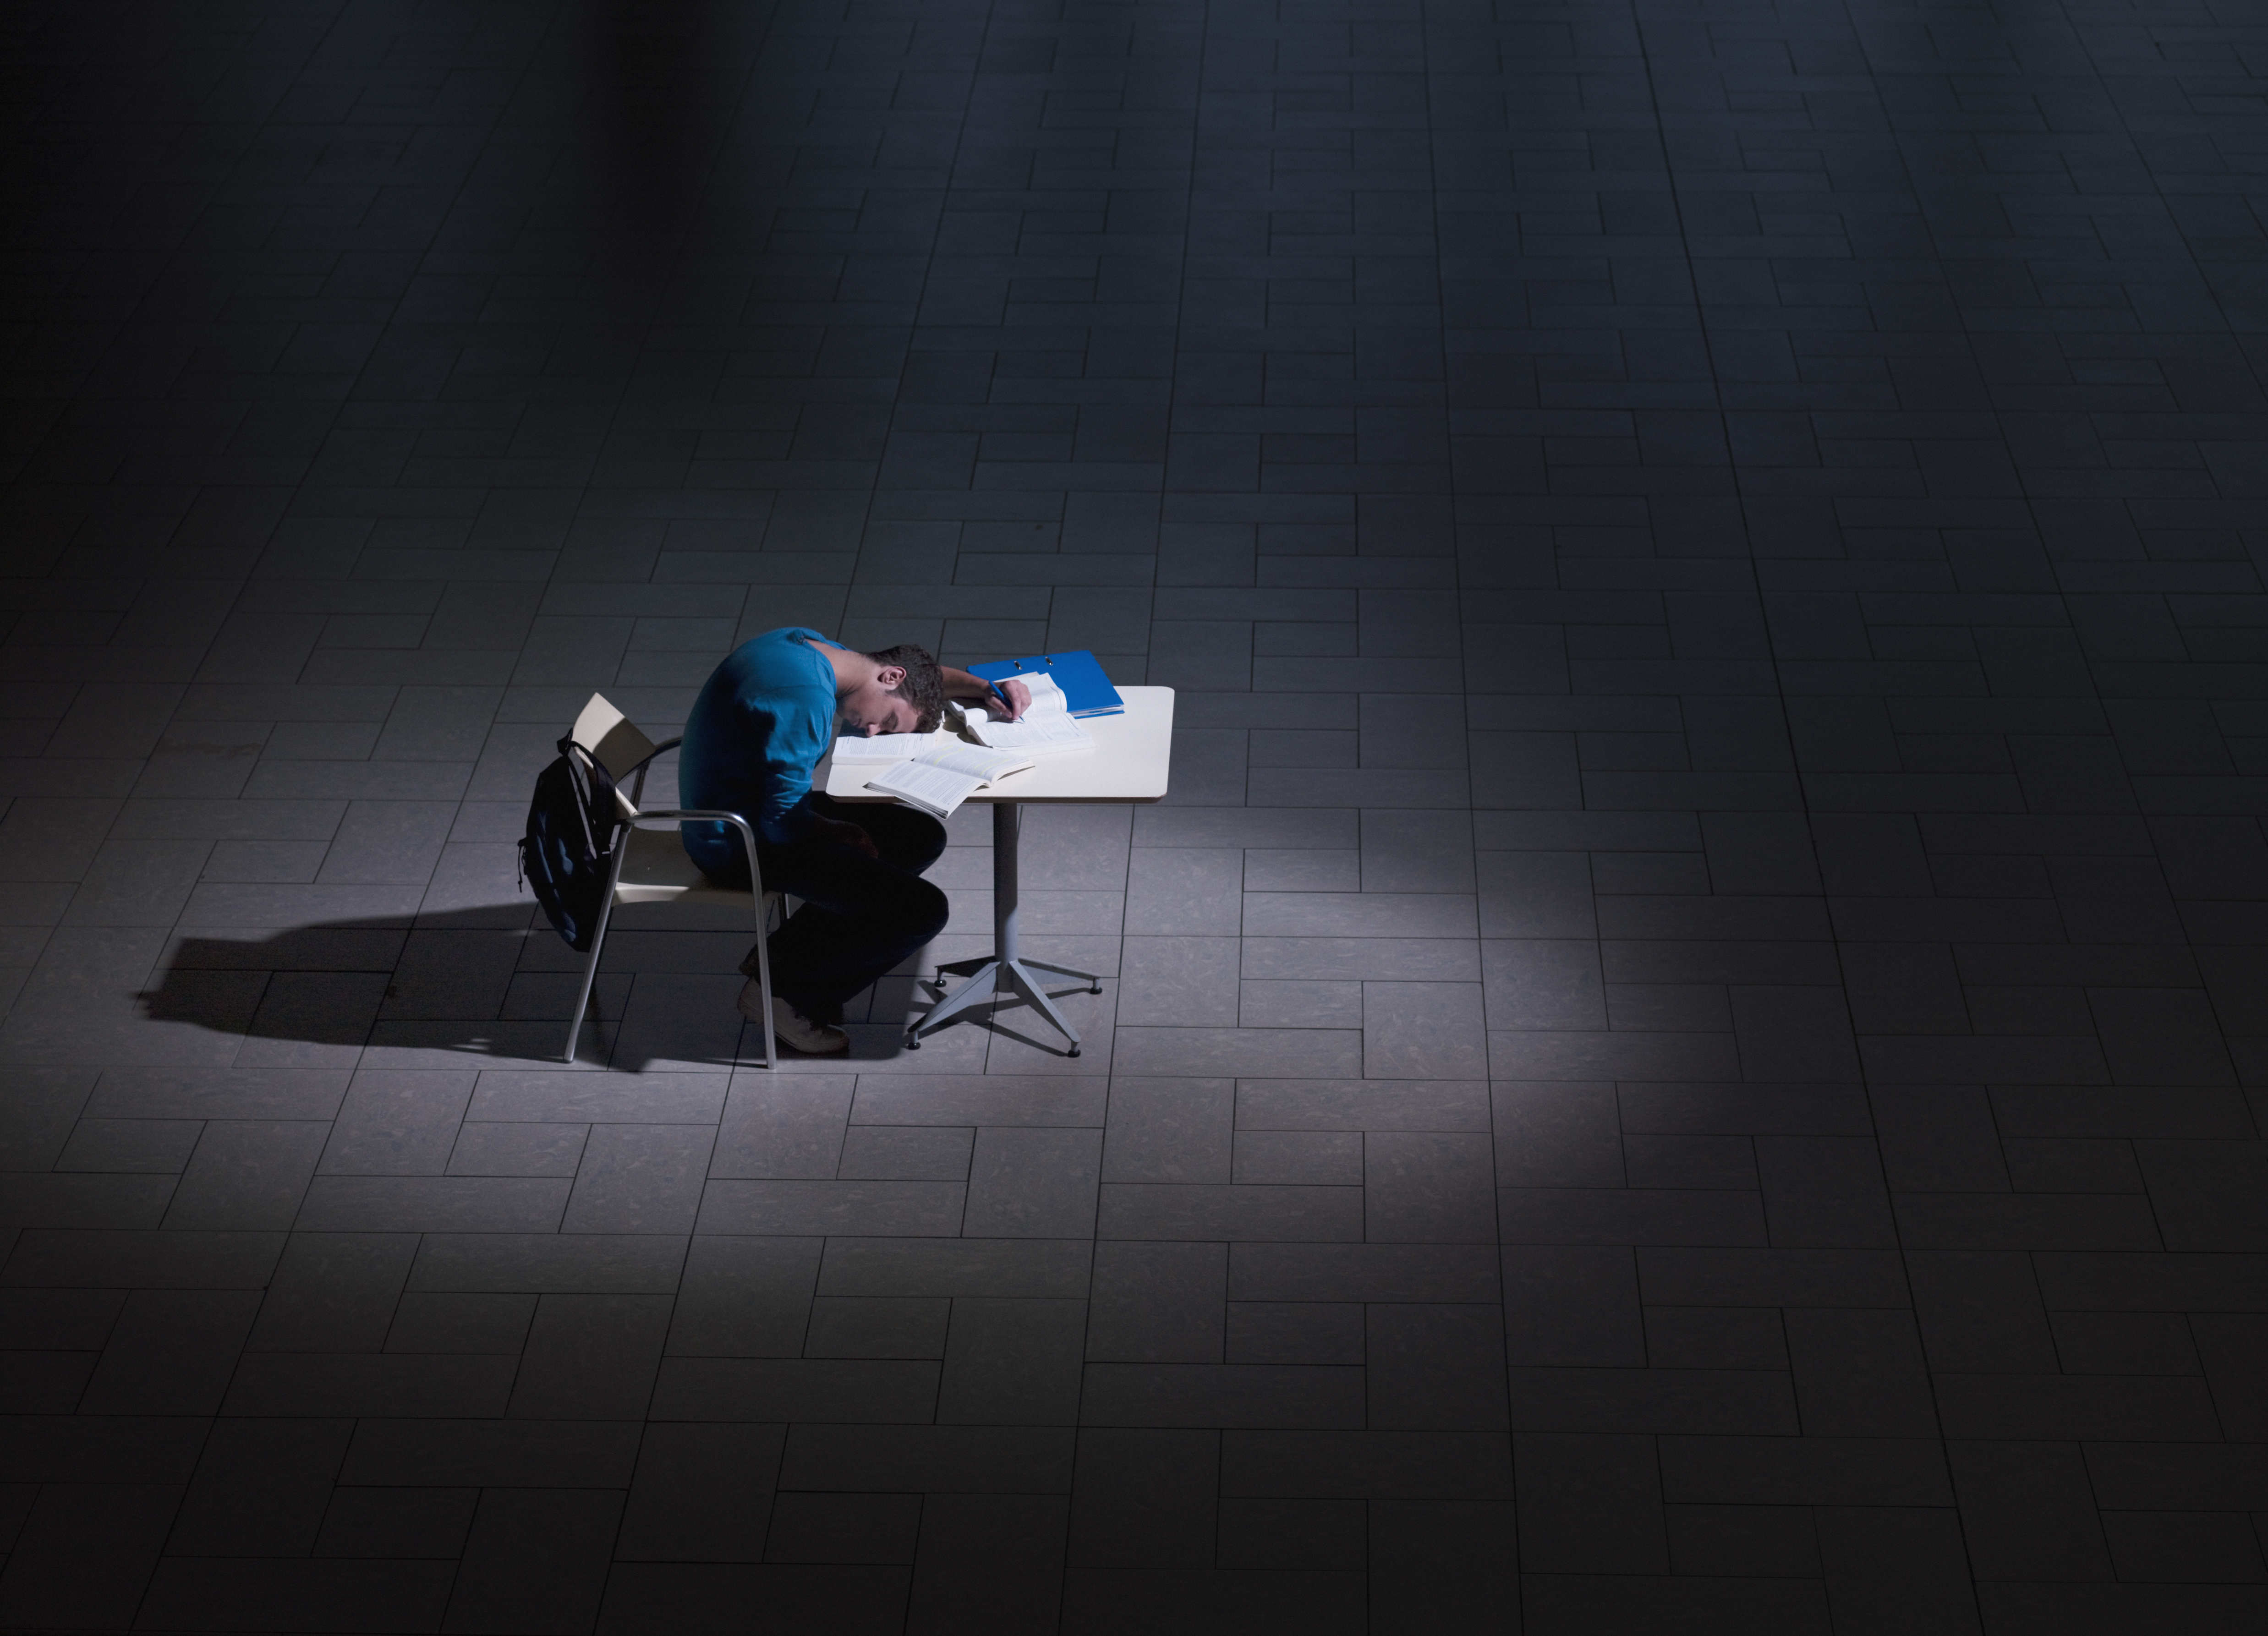 Male student sleeping on desk in darkness